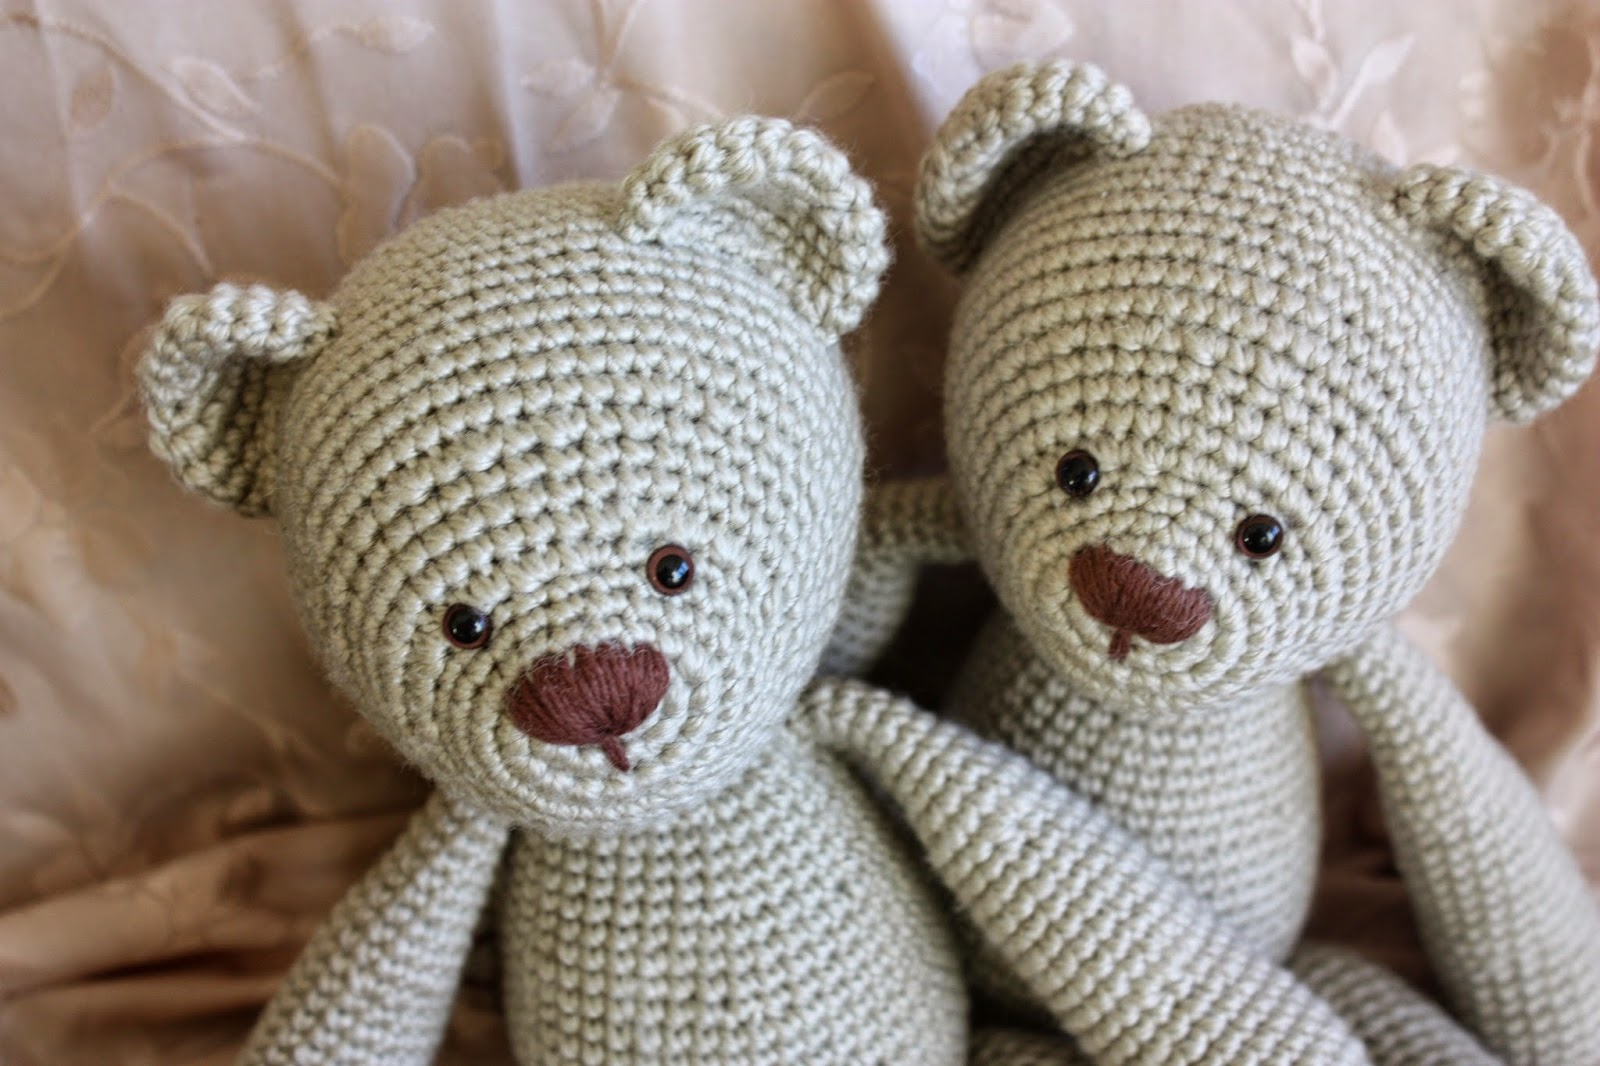 Crochet Pattern Amigurumi Bear : HAPPYAMIGURUMI: Amigurumi Teddy Bear Pattern